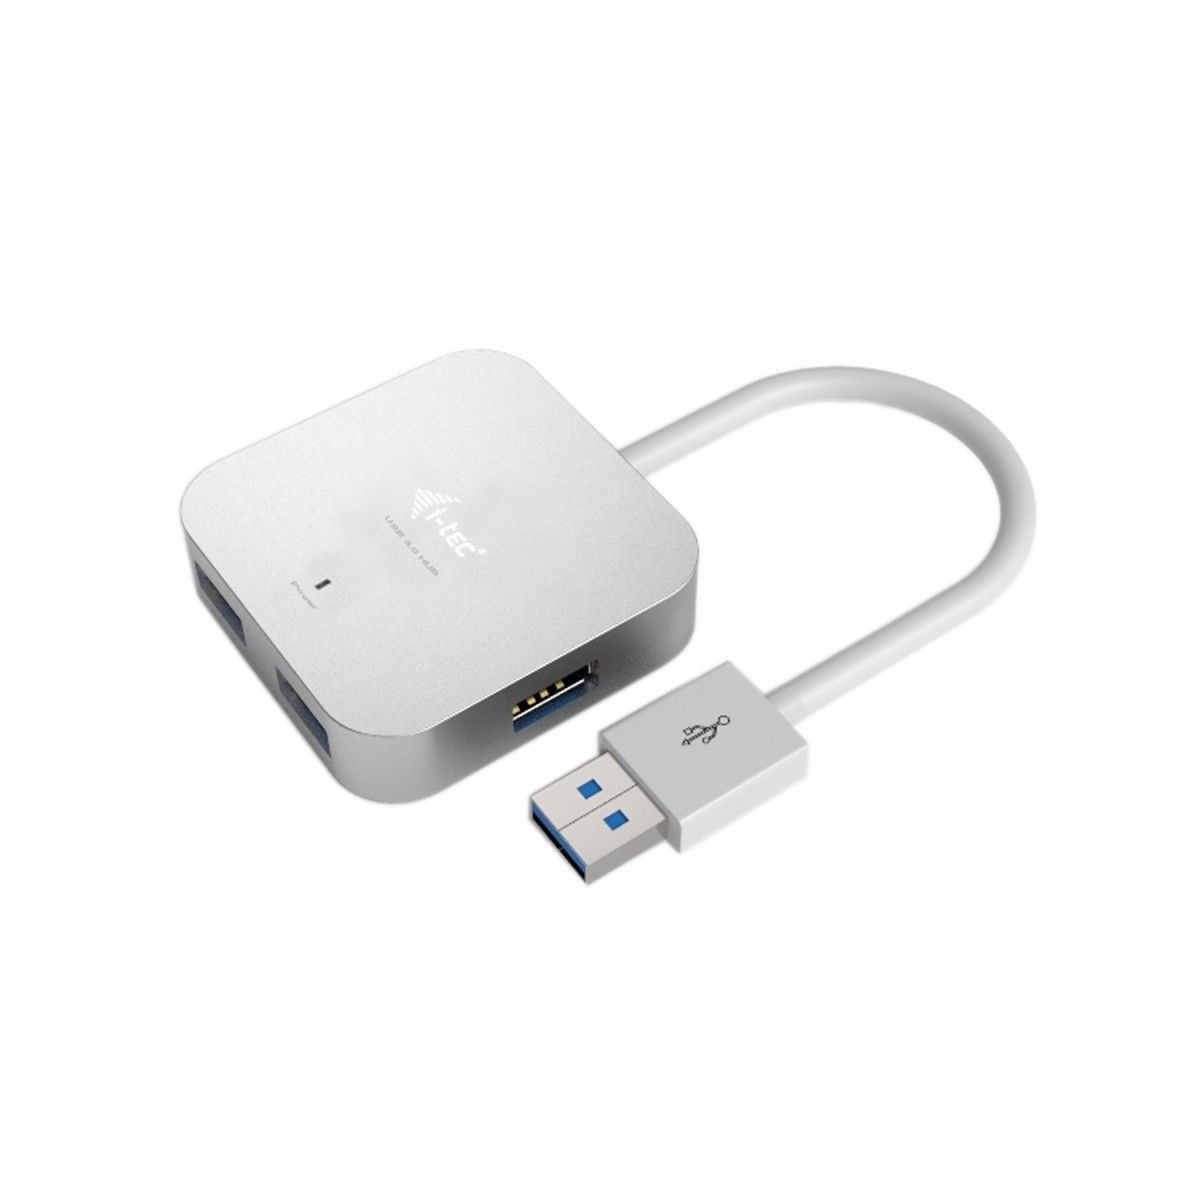 Pretec i-tec USB 3.0 Metal Passive HUB 4 Port for Notebook Ultrabook Tablet PC